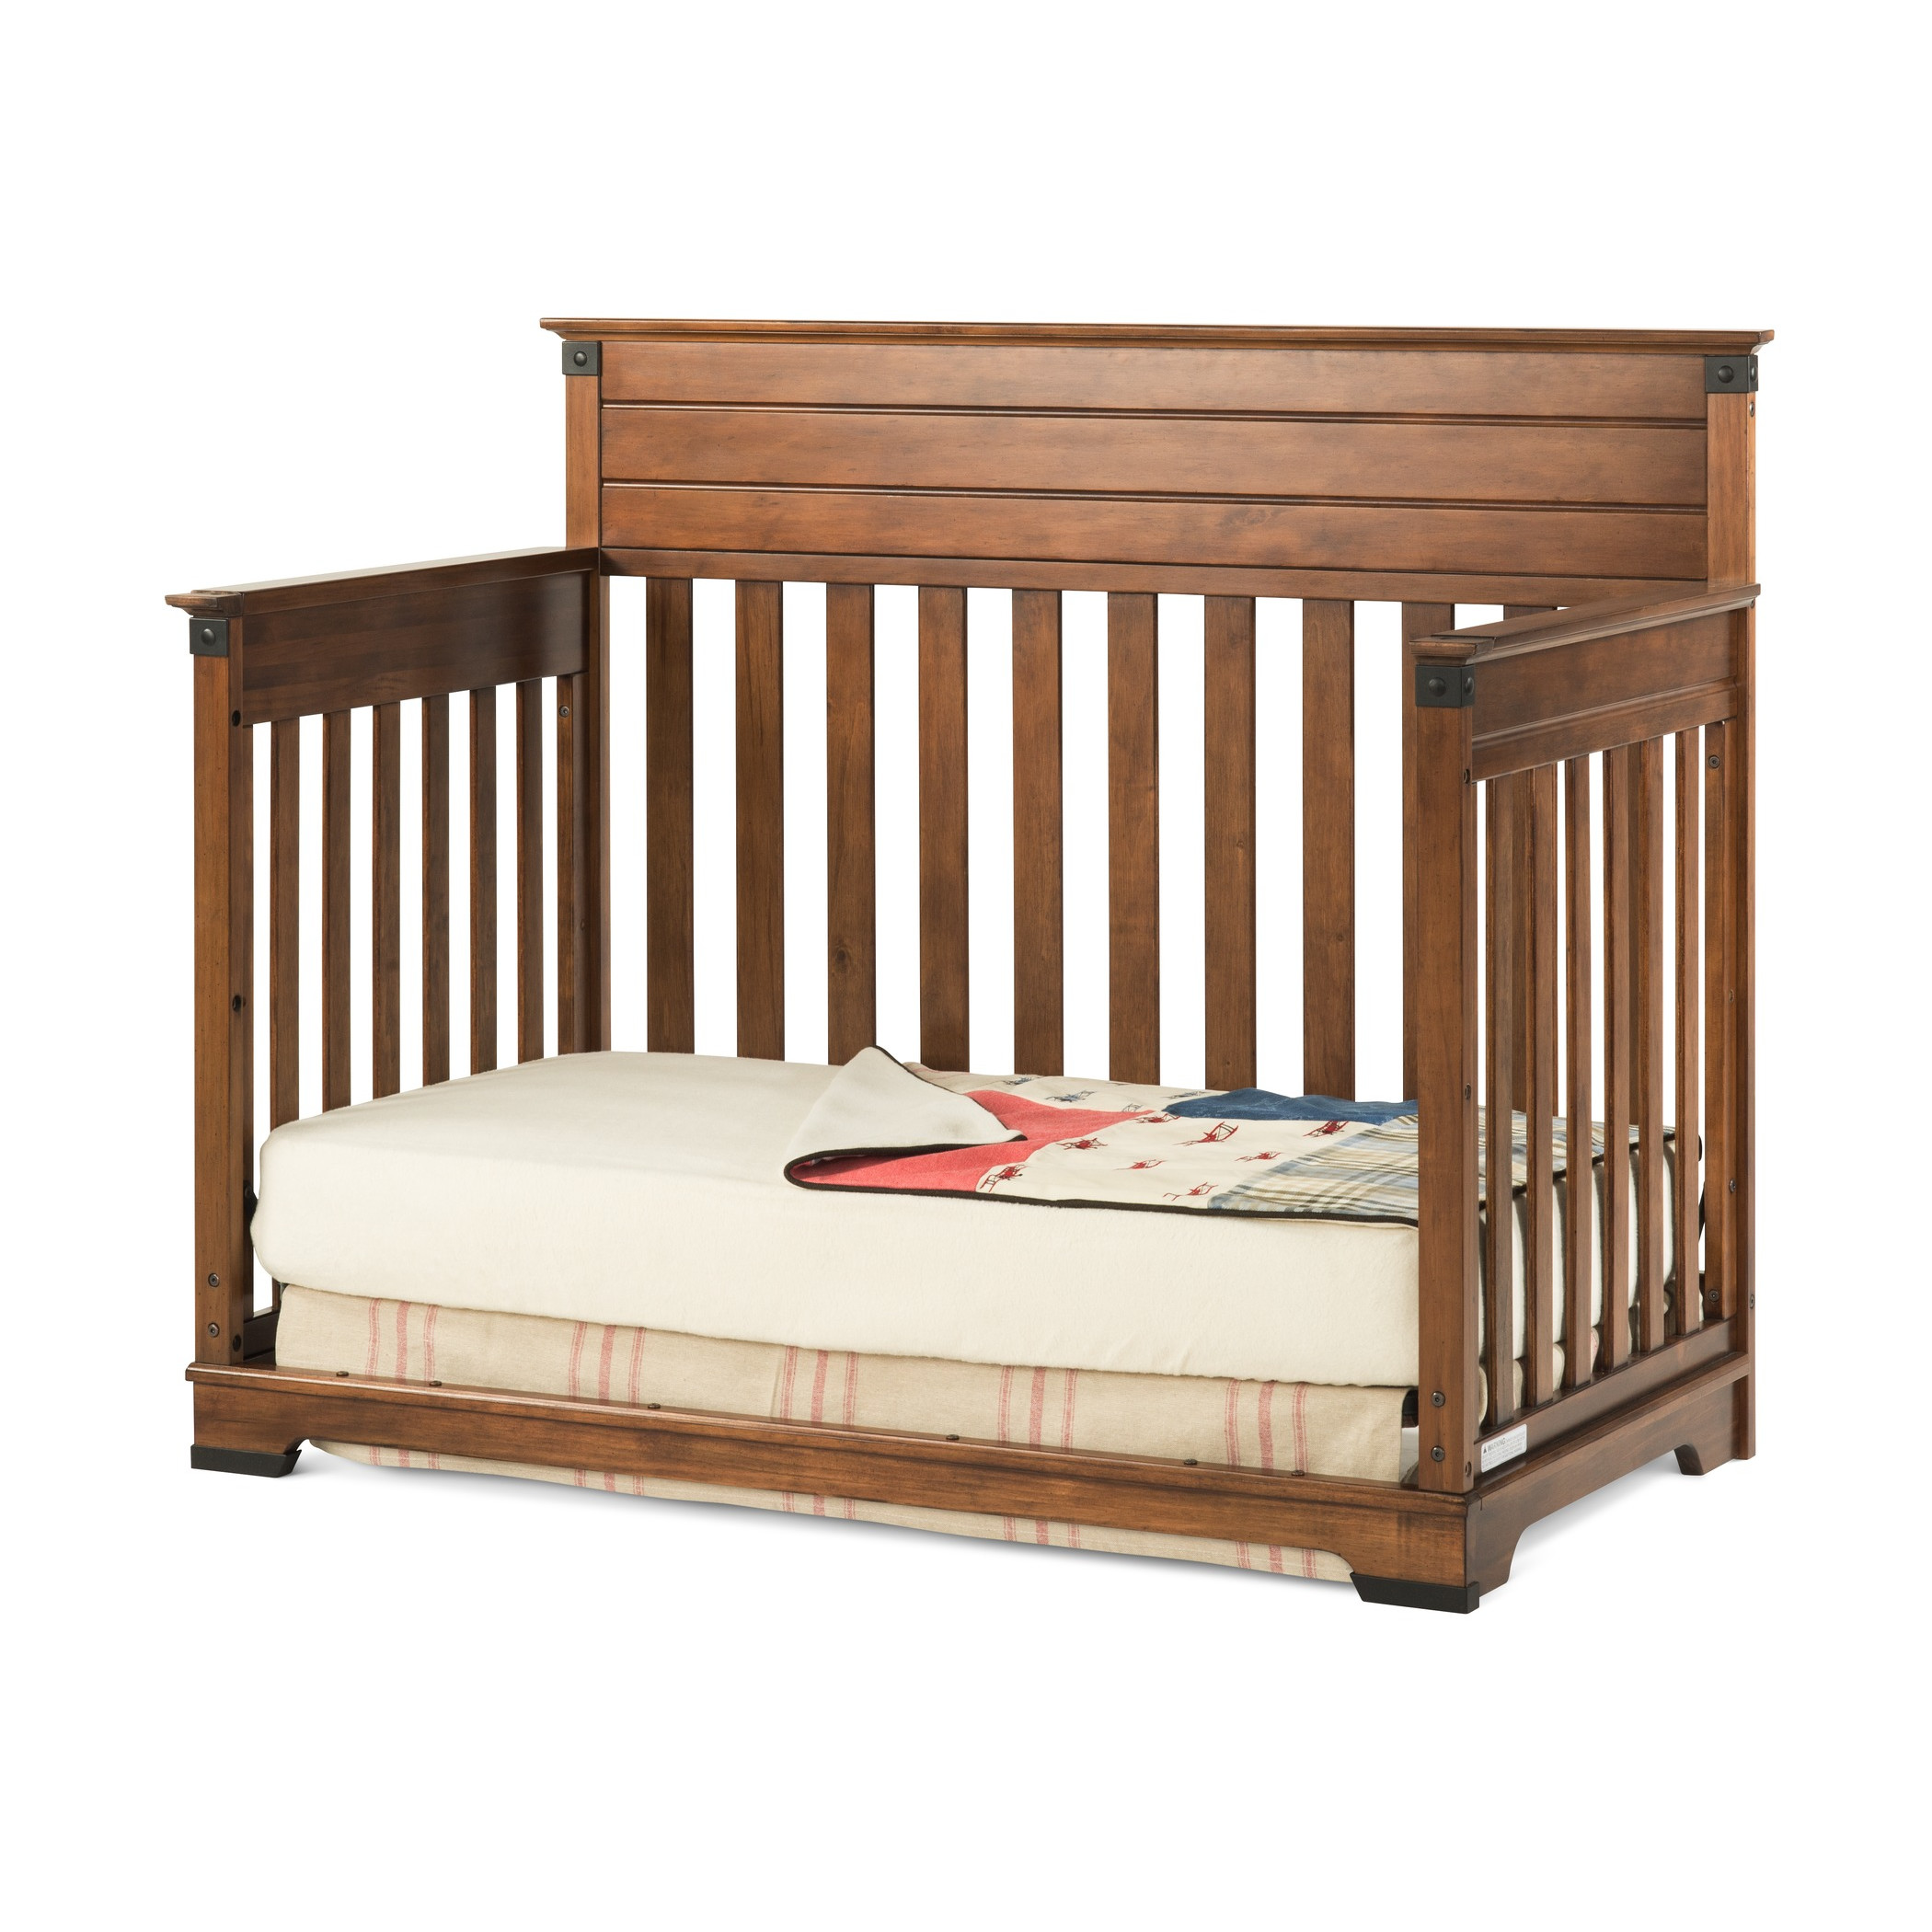 Charming Baby Cache Heritage Lifetime Convertible Crib for Best Baby Crib Choice: Baby Cache Dresser White | Baby Cache Heritage Lifetime Convertible Crib | Baby Cache Riverside